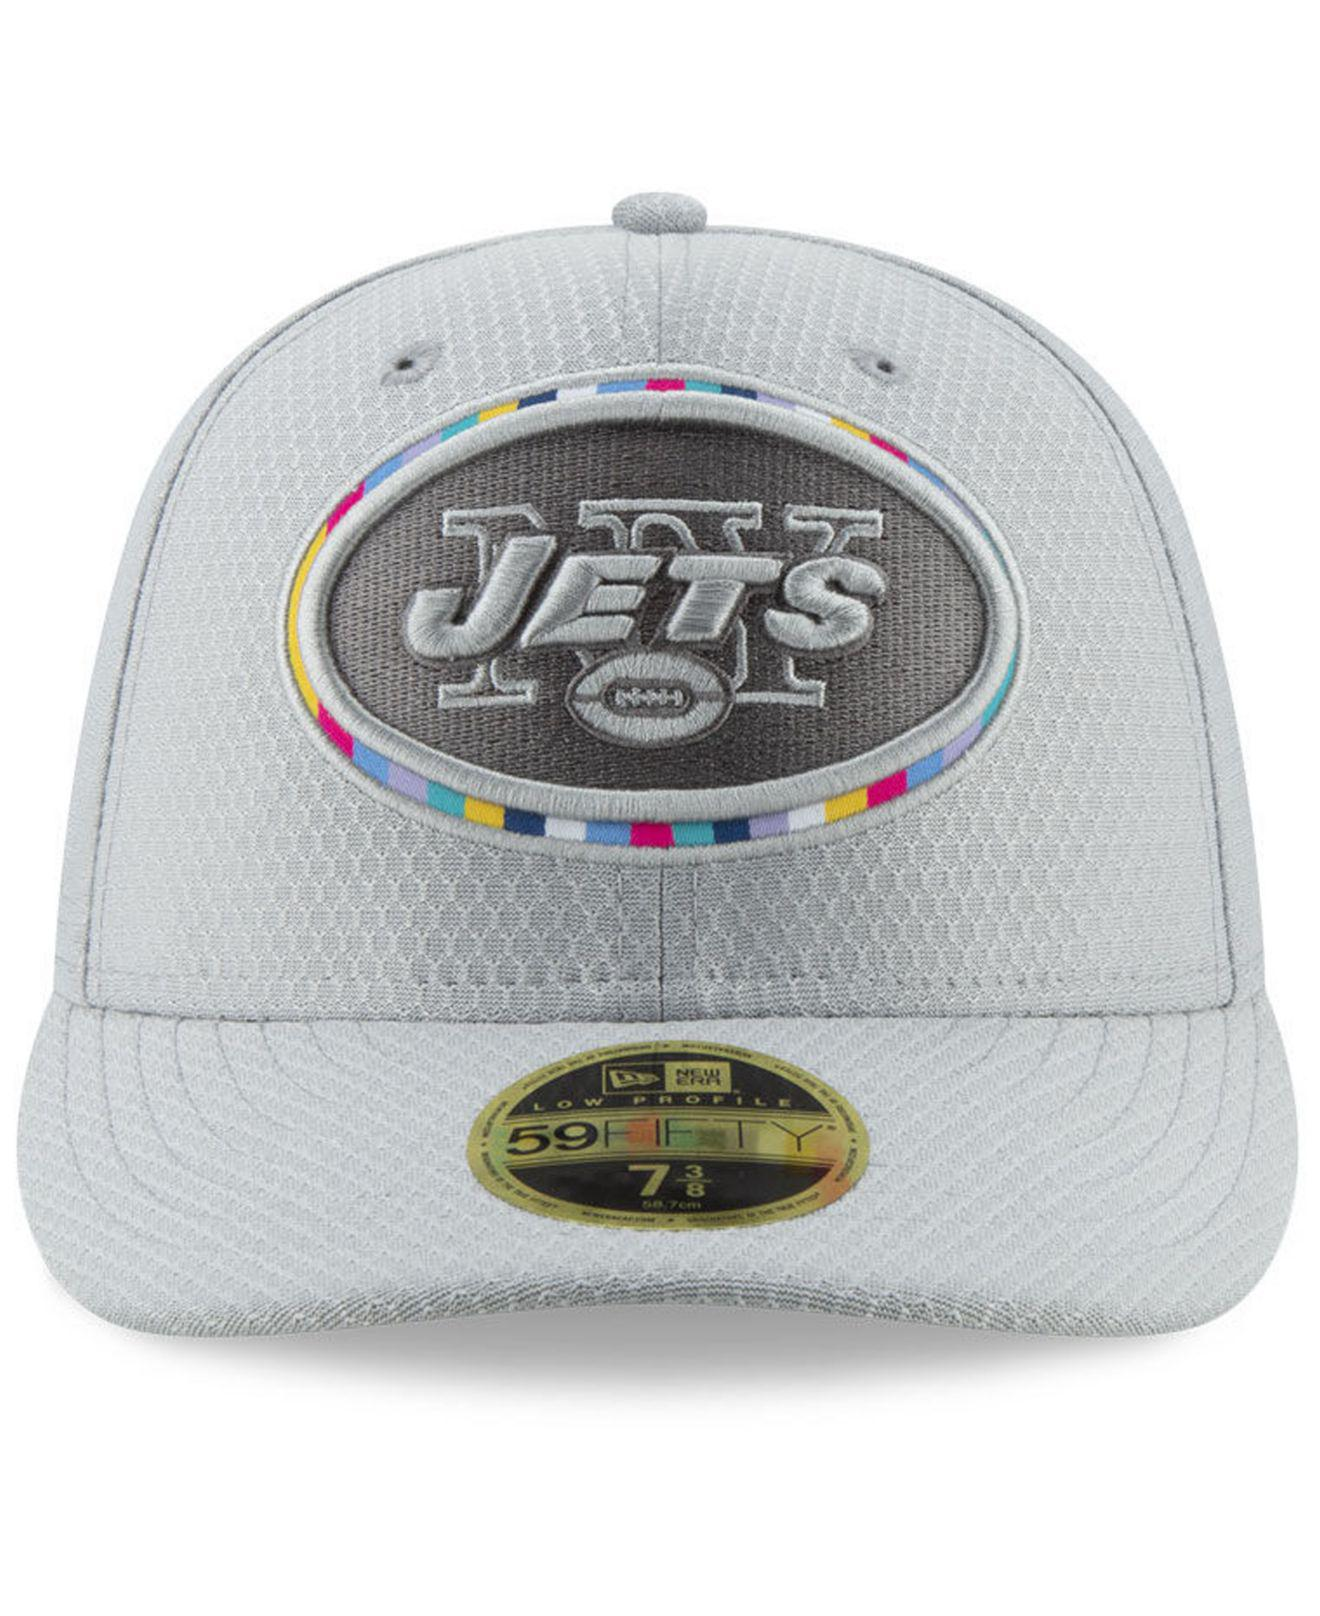 d74aa3ba11c Lyst - KTZ New York Jets Crucial Catch Low Profile 59fifty Fitted Cap in  Gray for Men